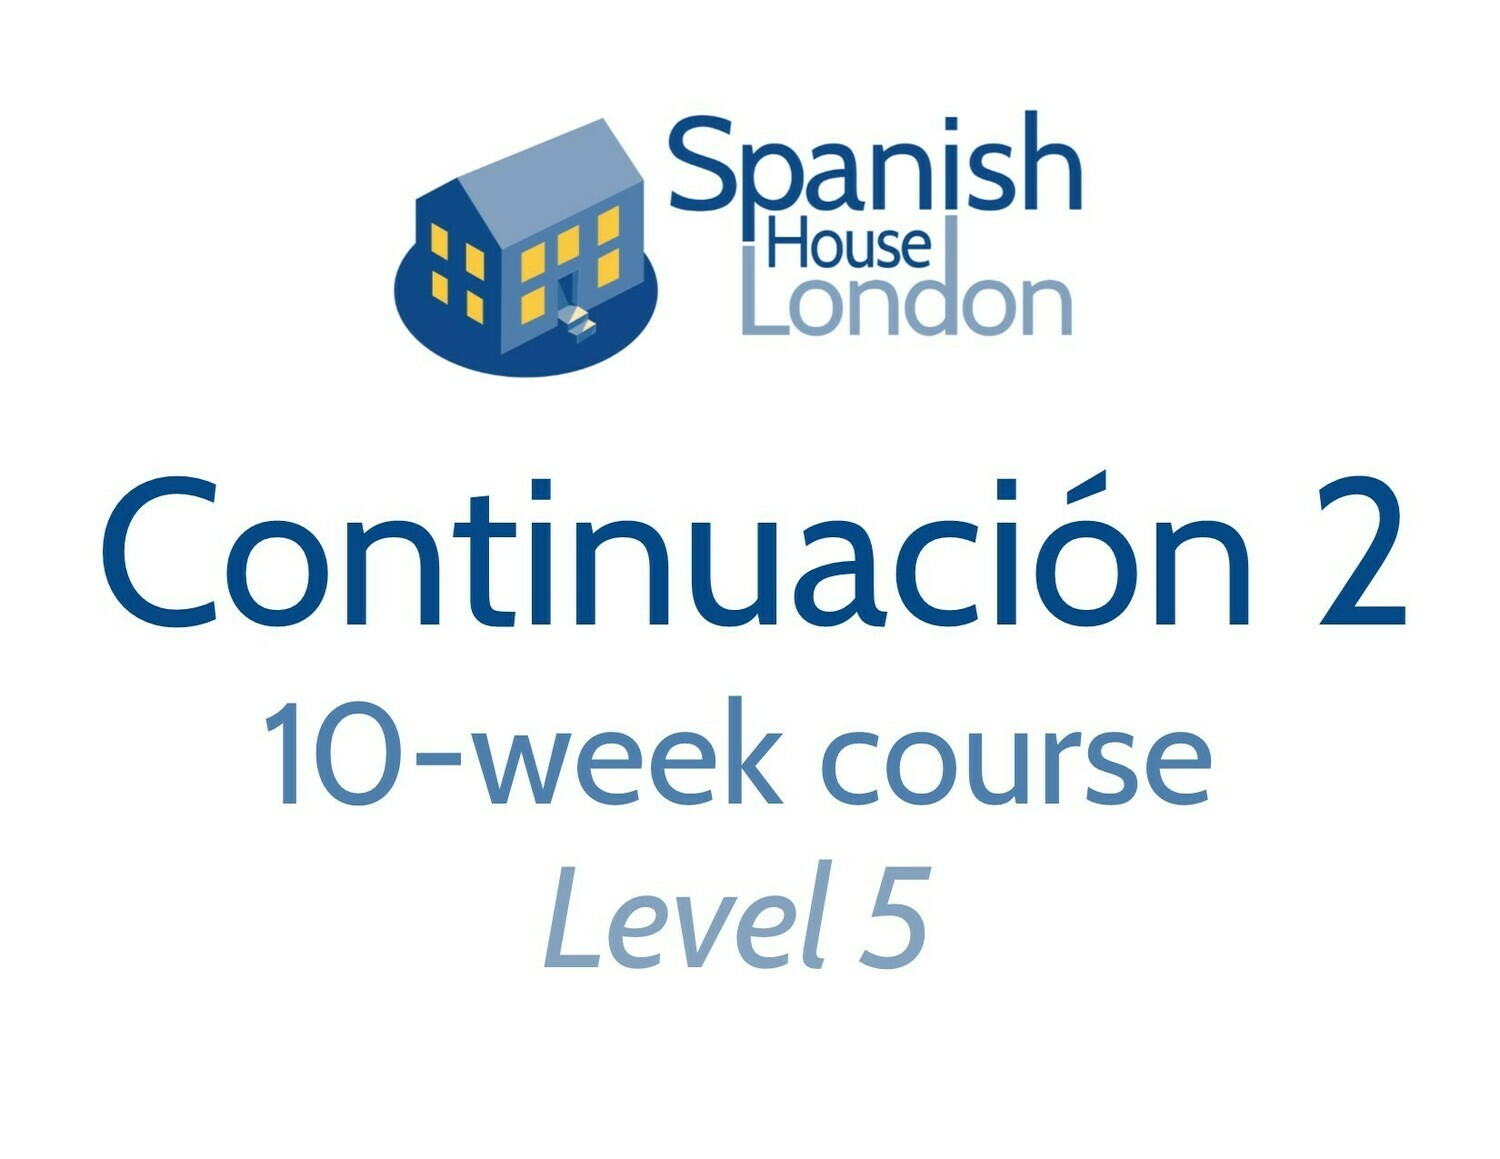 Continuacion 2 Course starting on 7th August at 6pm in Euston